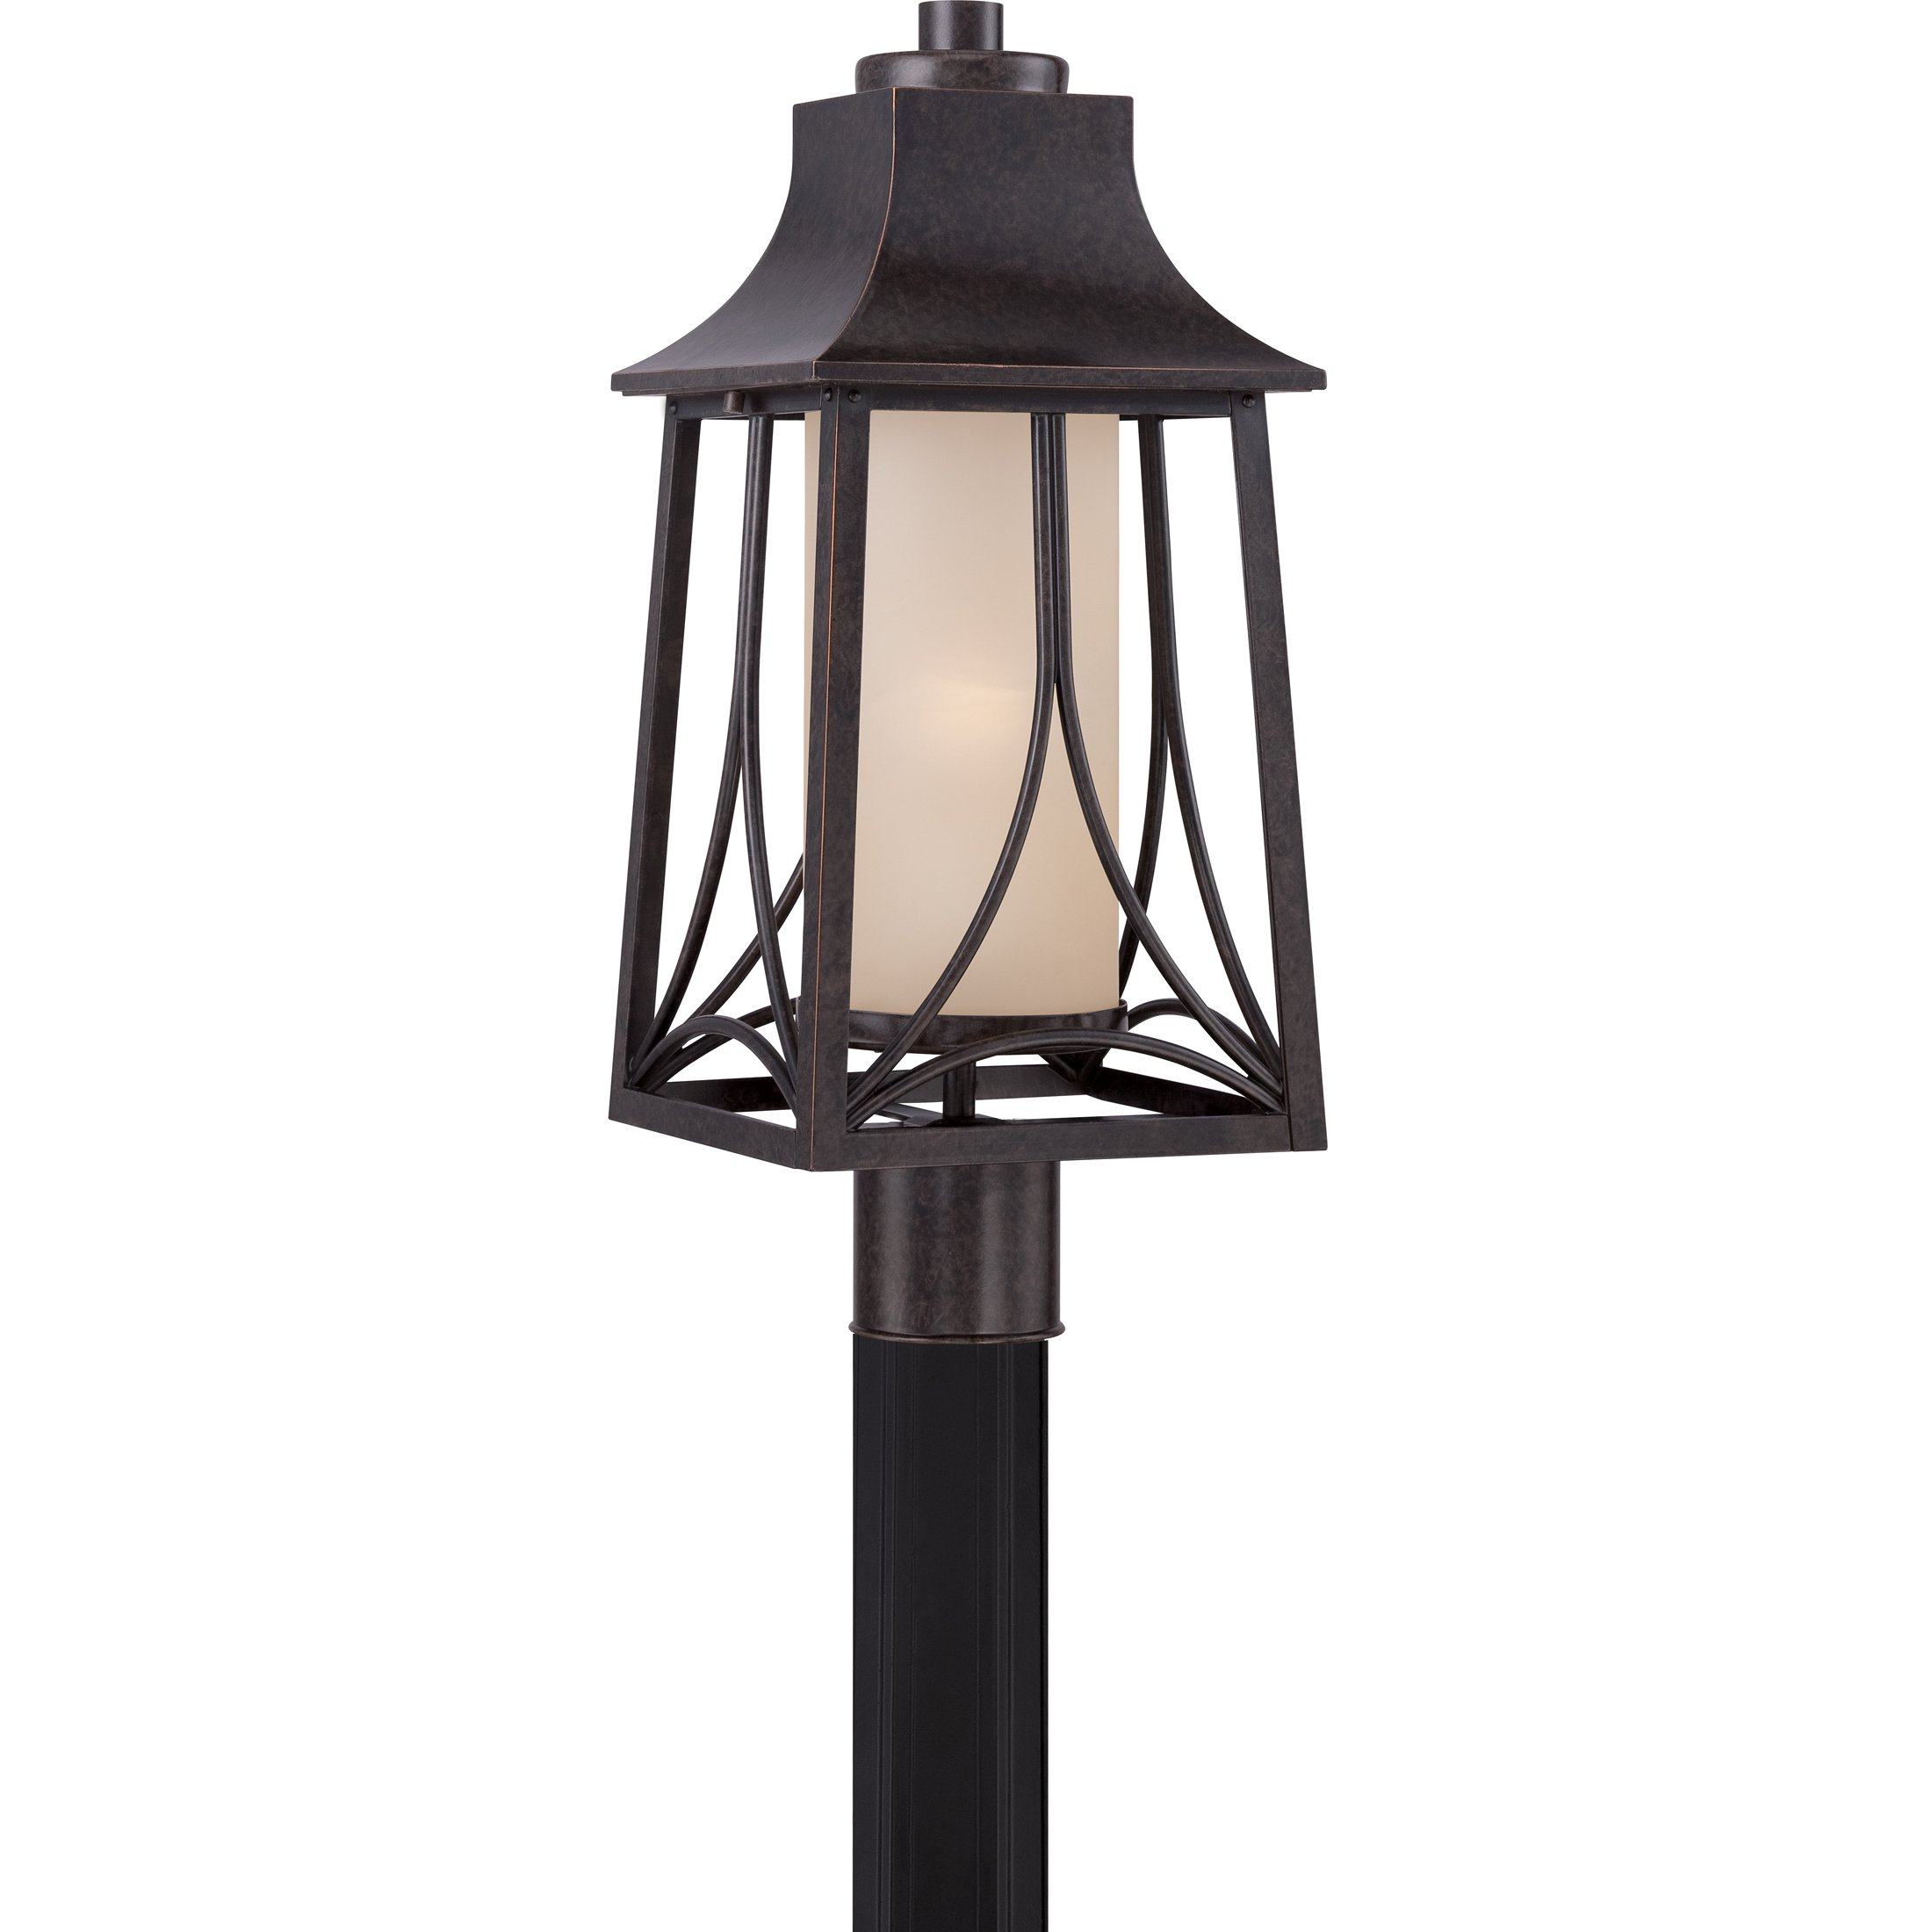 Quoizel HTR9008IB One Light Outdoor Post Lantern